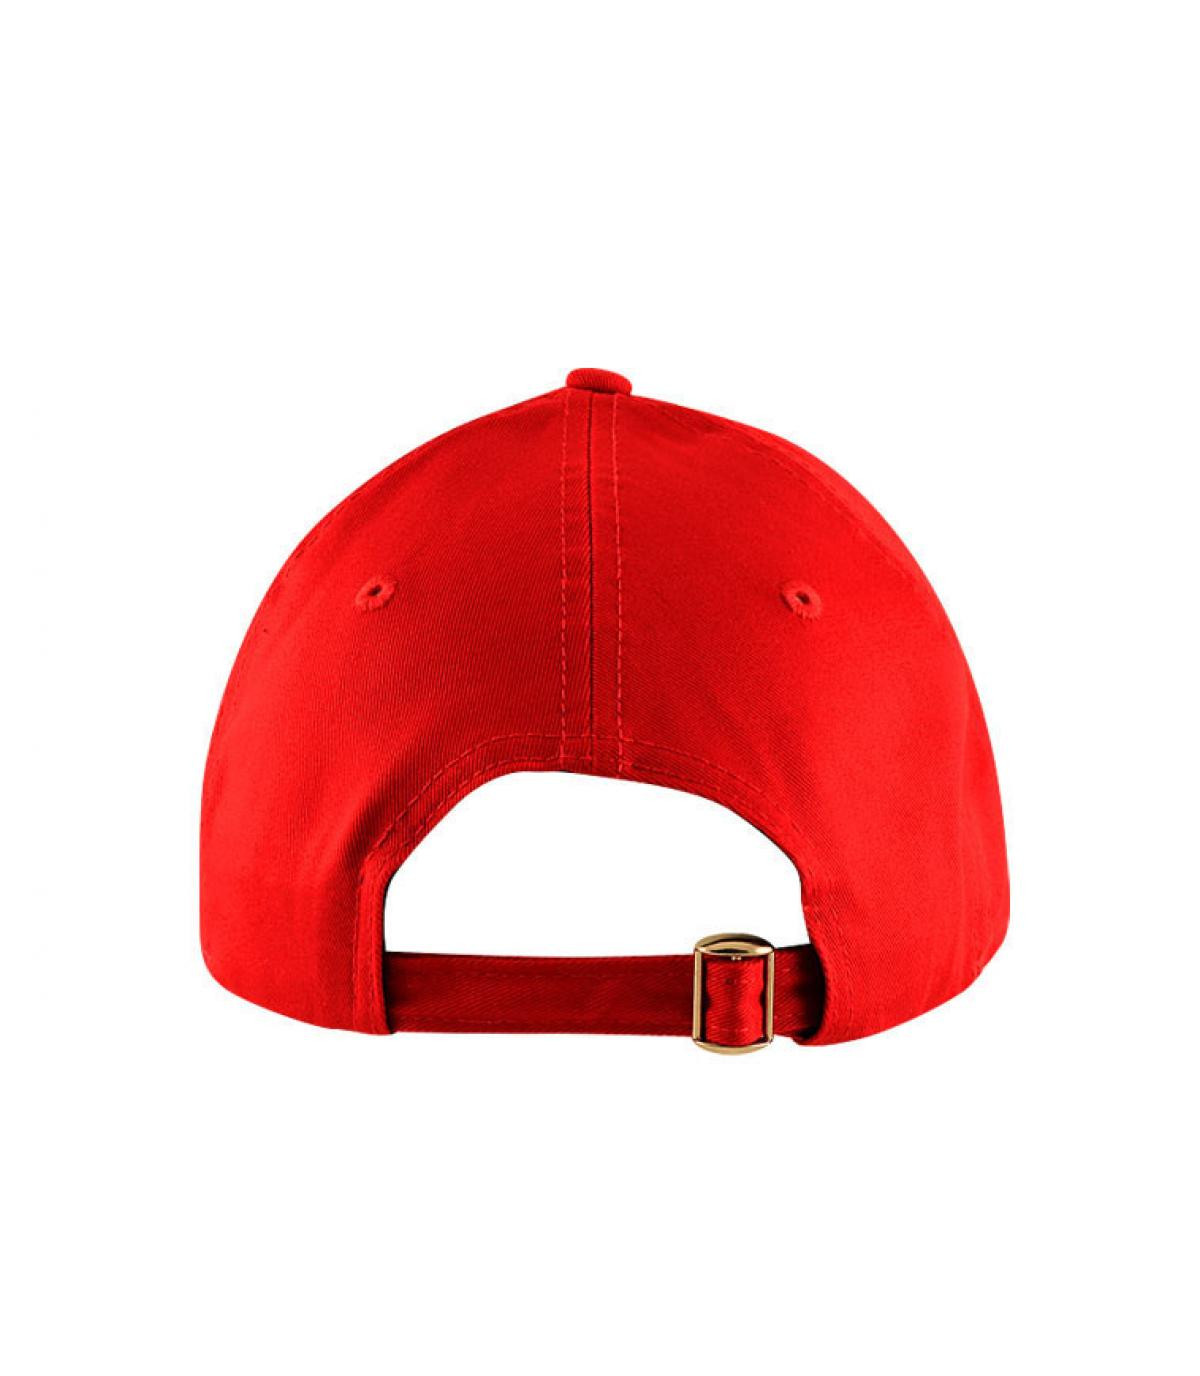 Details Child 9Forty NY red - Abbildung 3